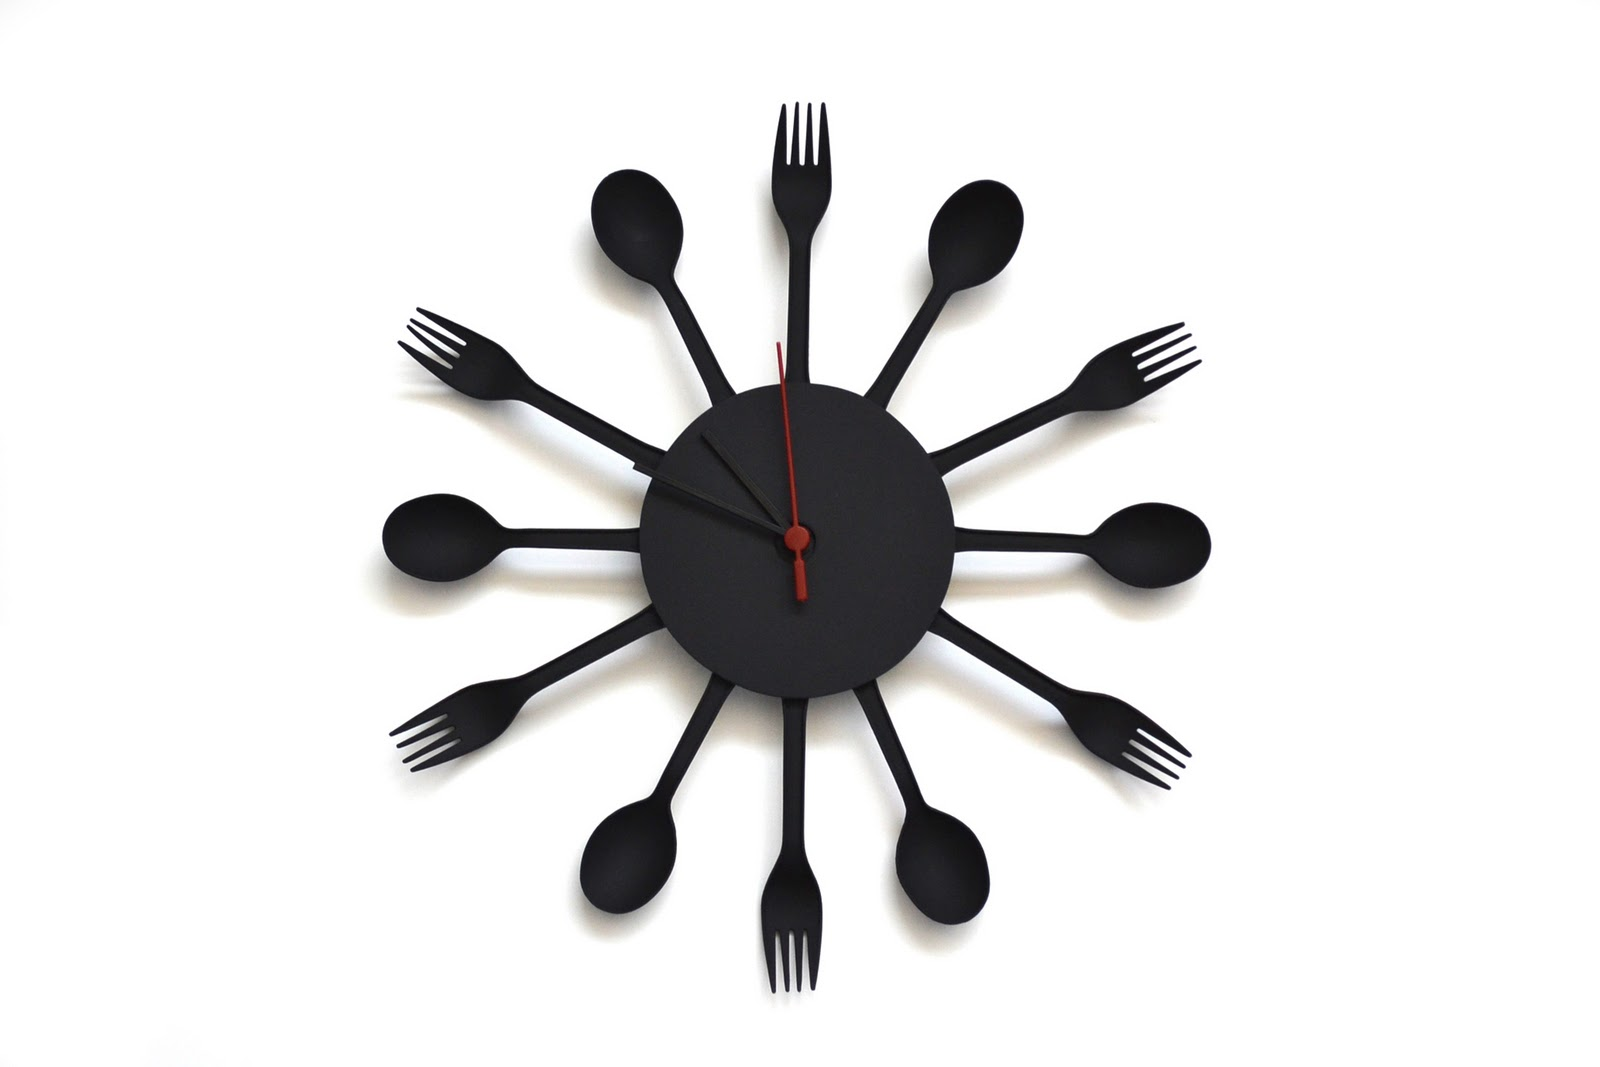 re kitchen clock made with disposable flatware. Black Bedroom Furniture Sets. Home Design Ideas